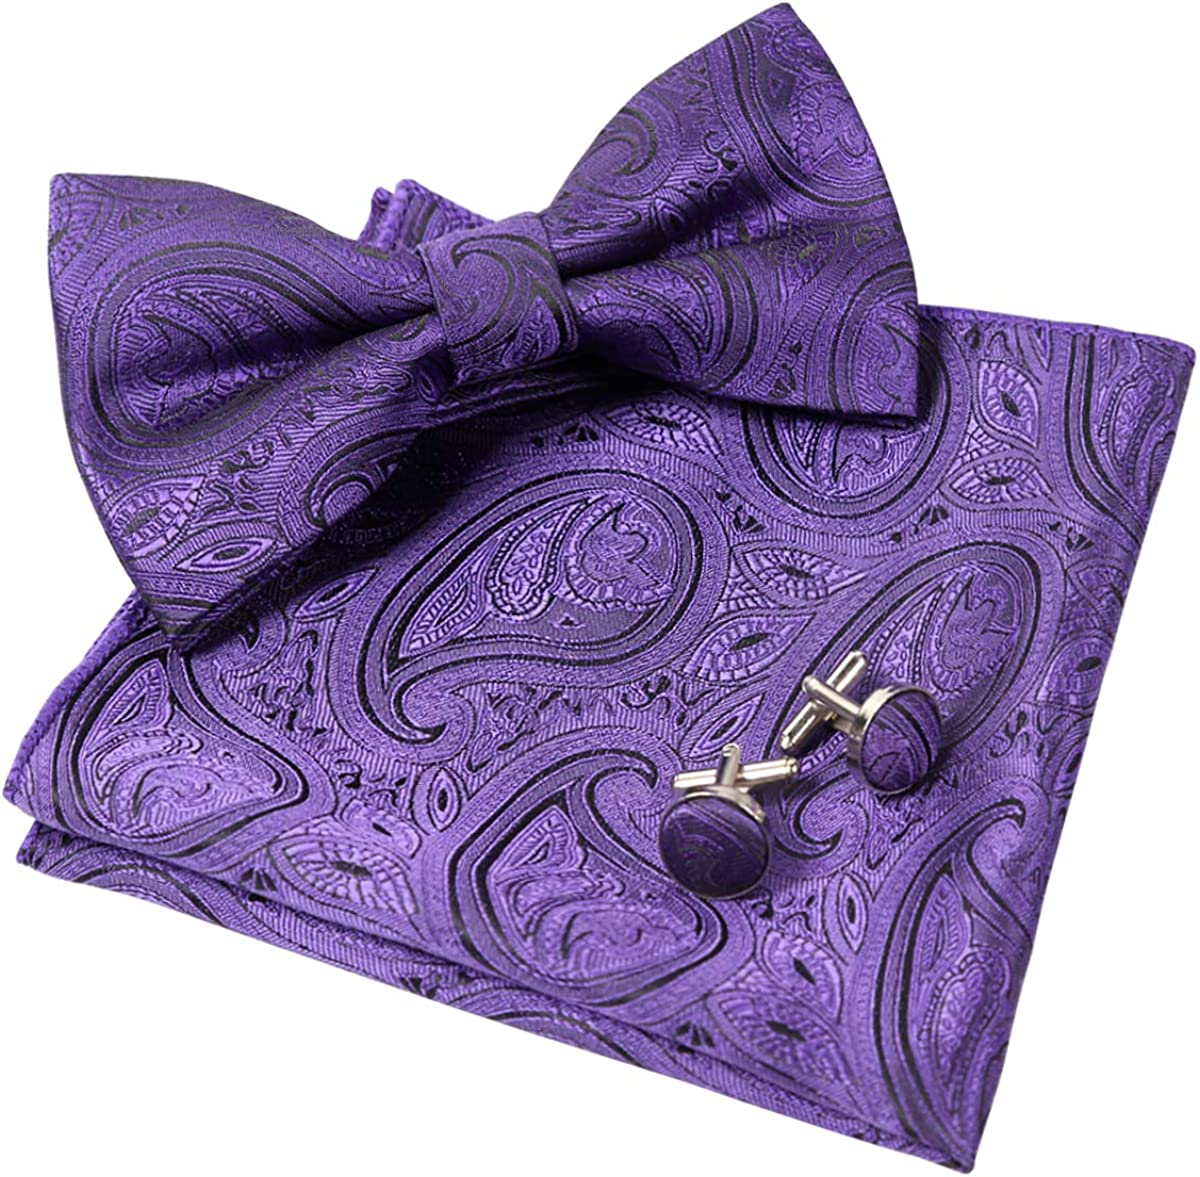 Alizeal Mens Vintage Party Bow Tie, Hanky and Cufflinks Set